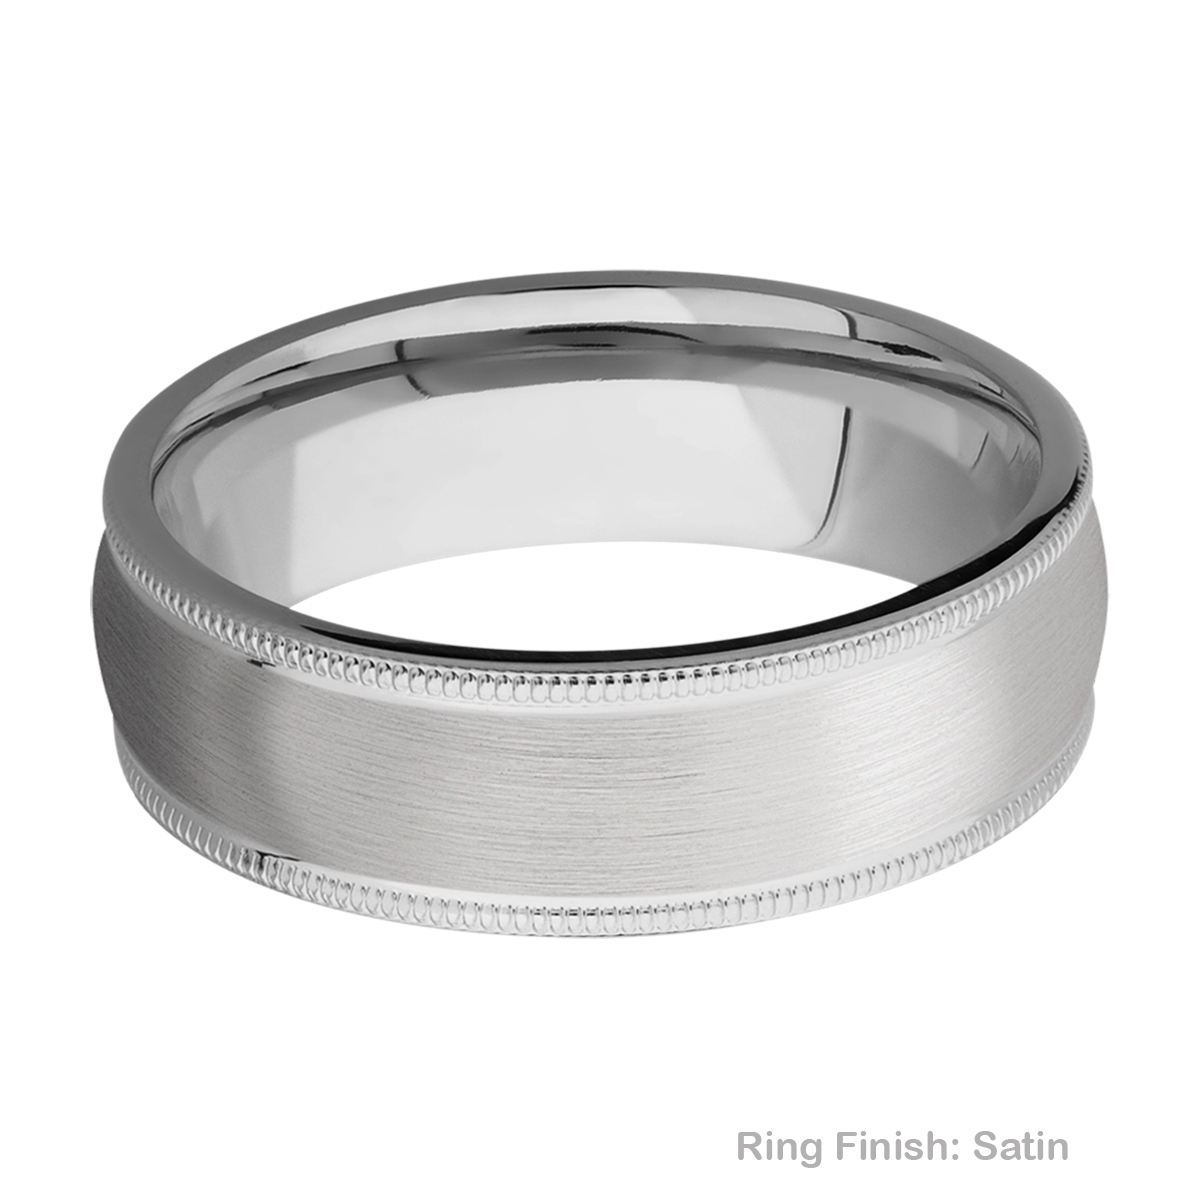 Lashbrook 7DMIL Titanium Wedding Ring or Band Alternative View 5